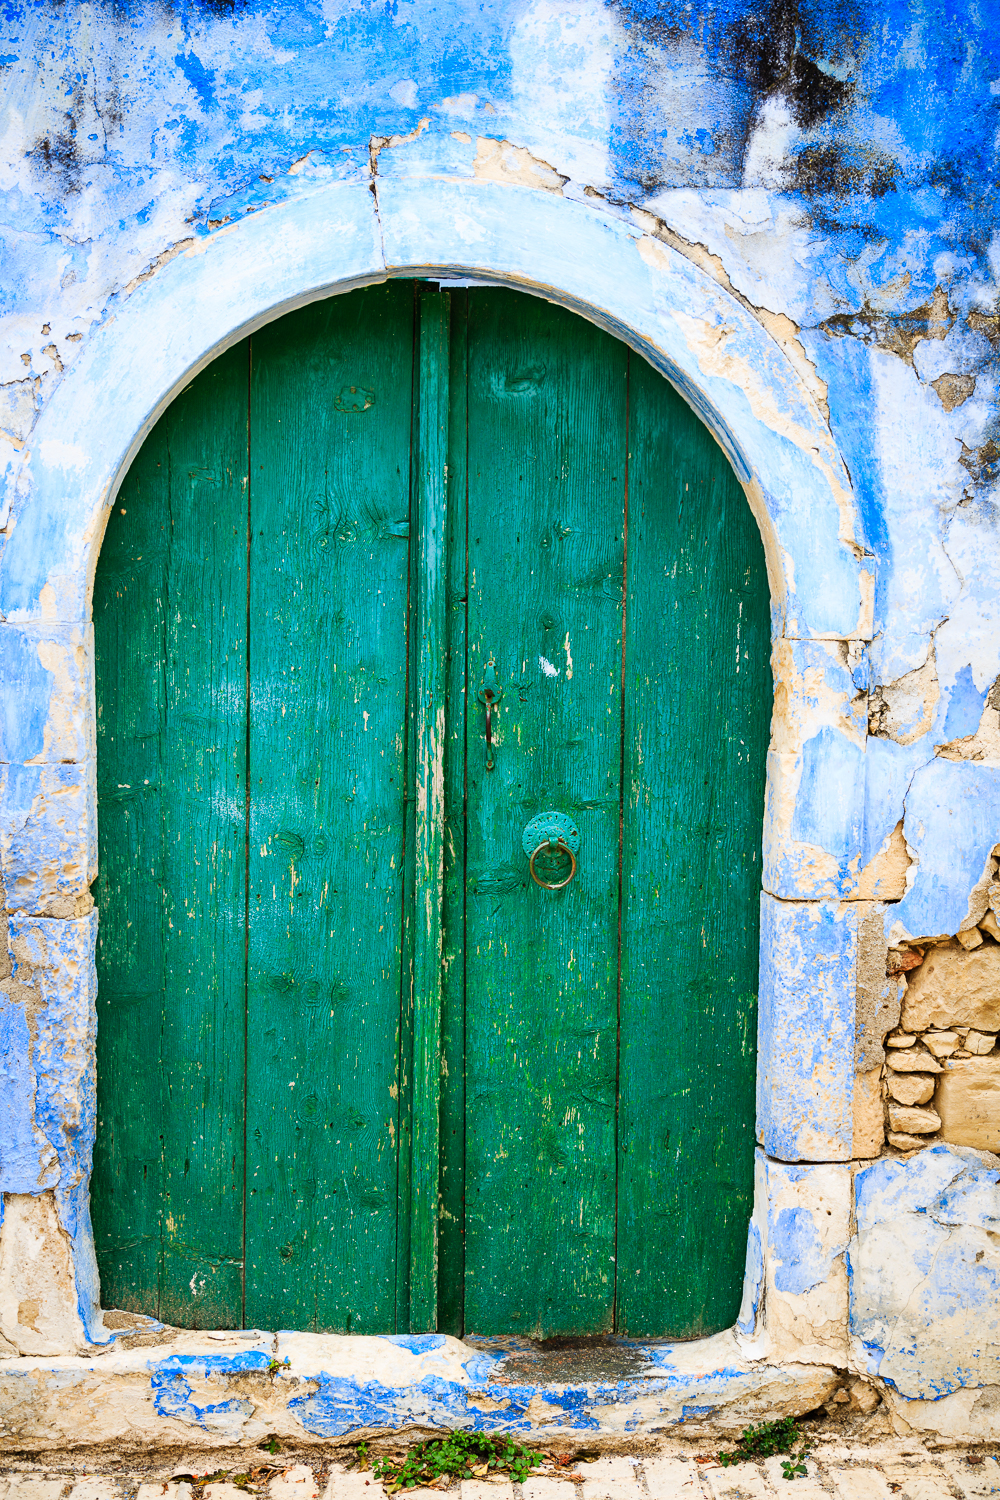 I loved the colorful doorways in Margarites.